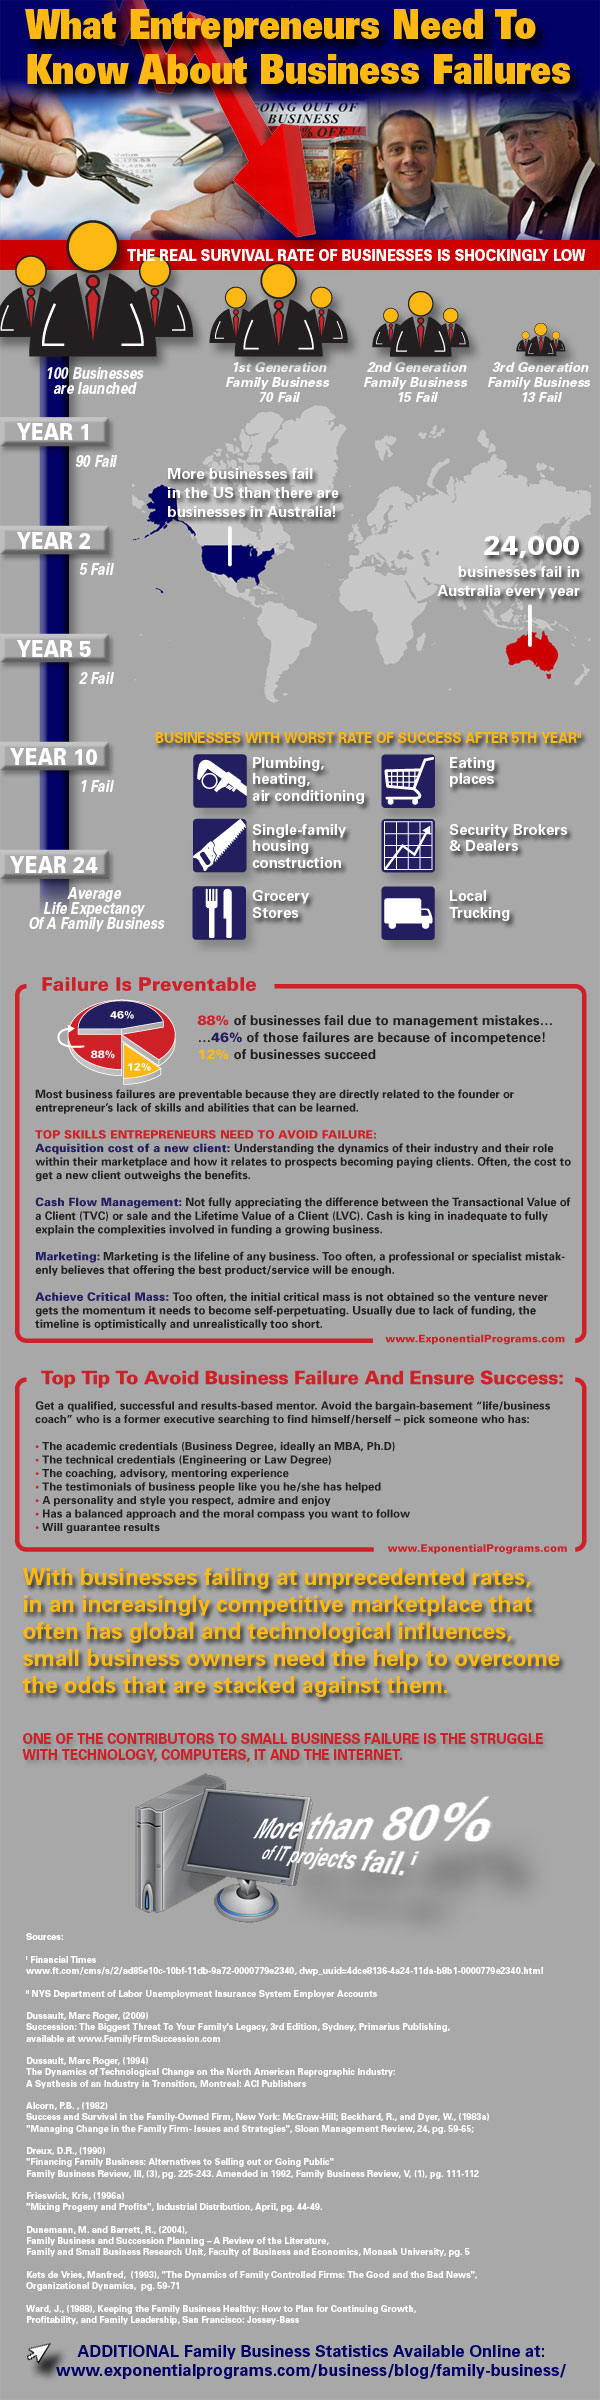 Family Business Failure Statistics